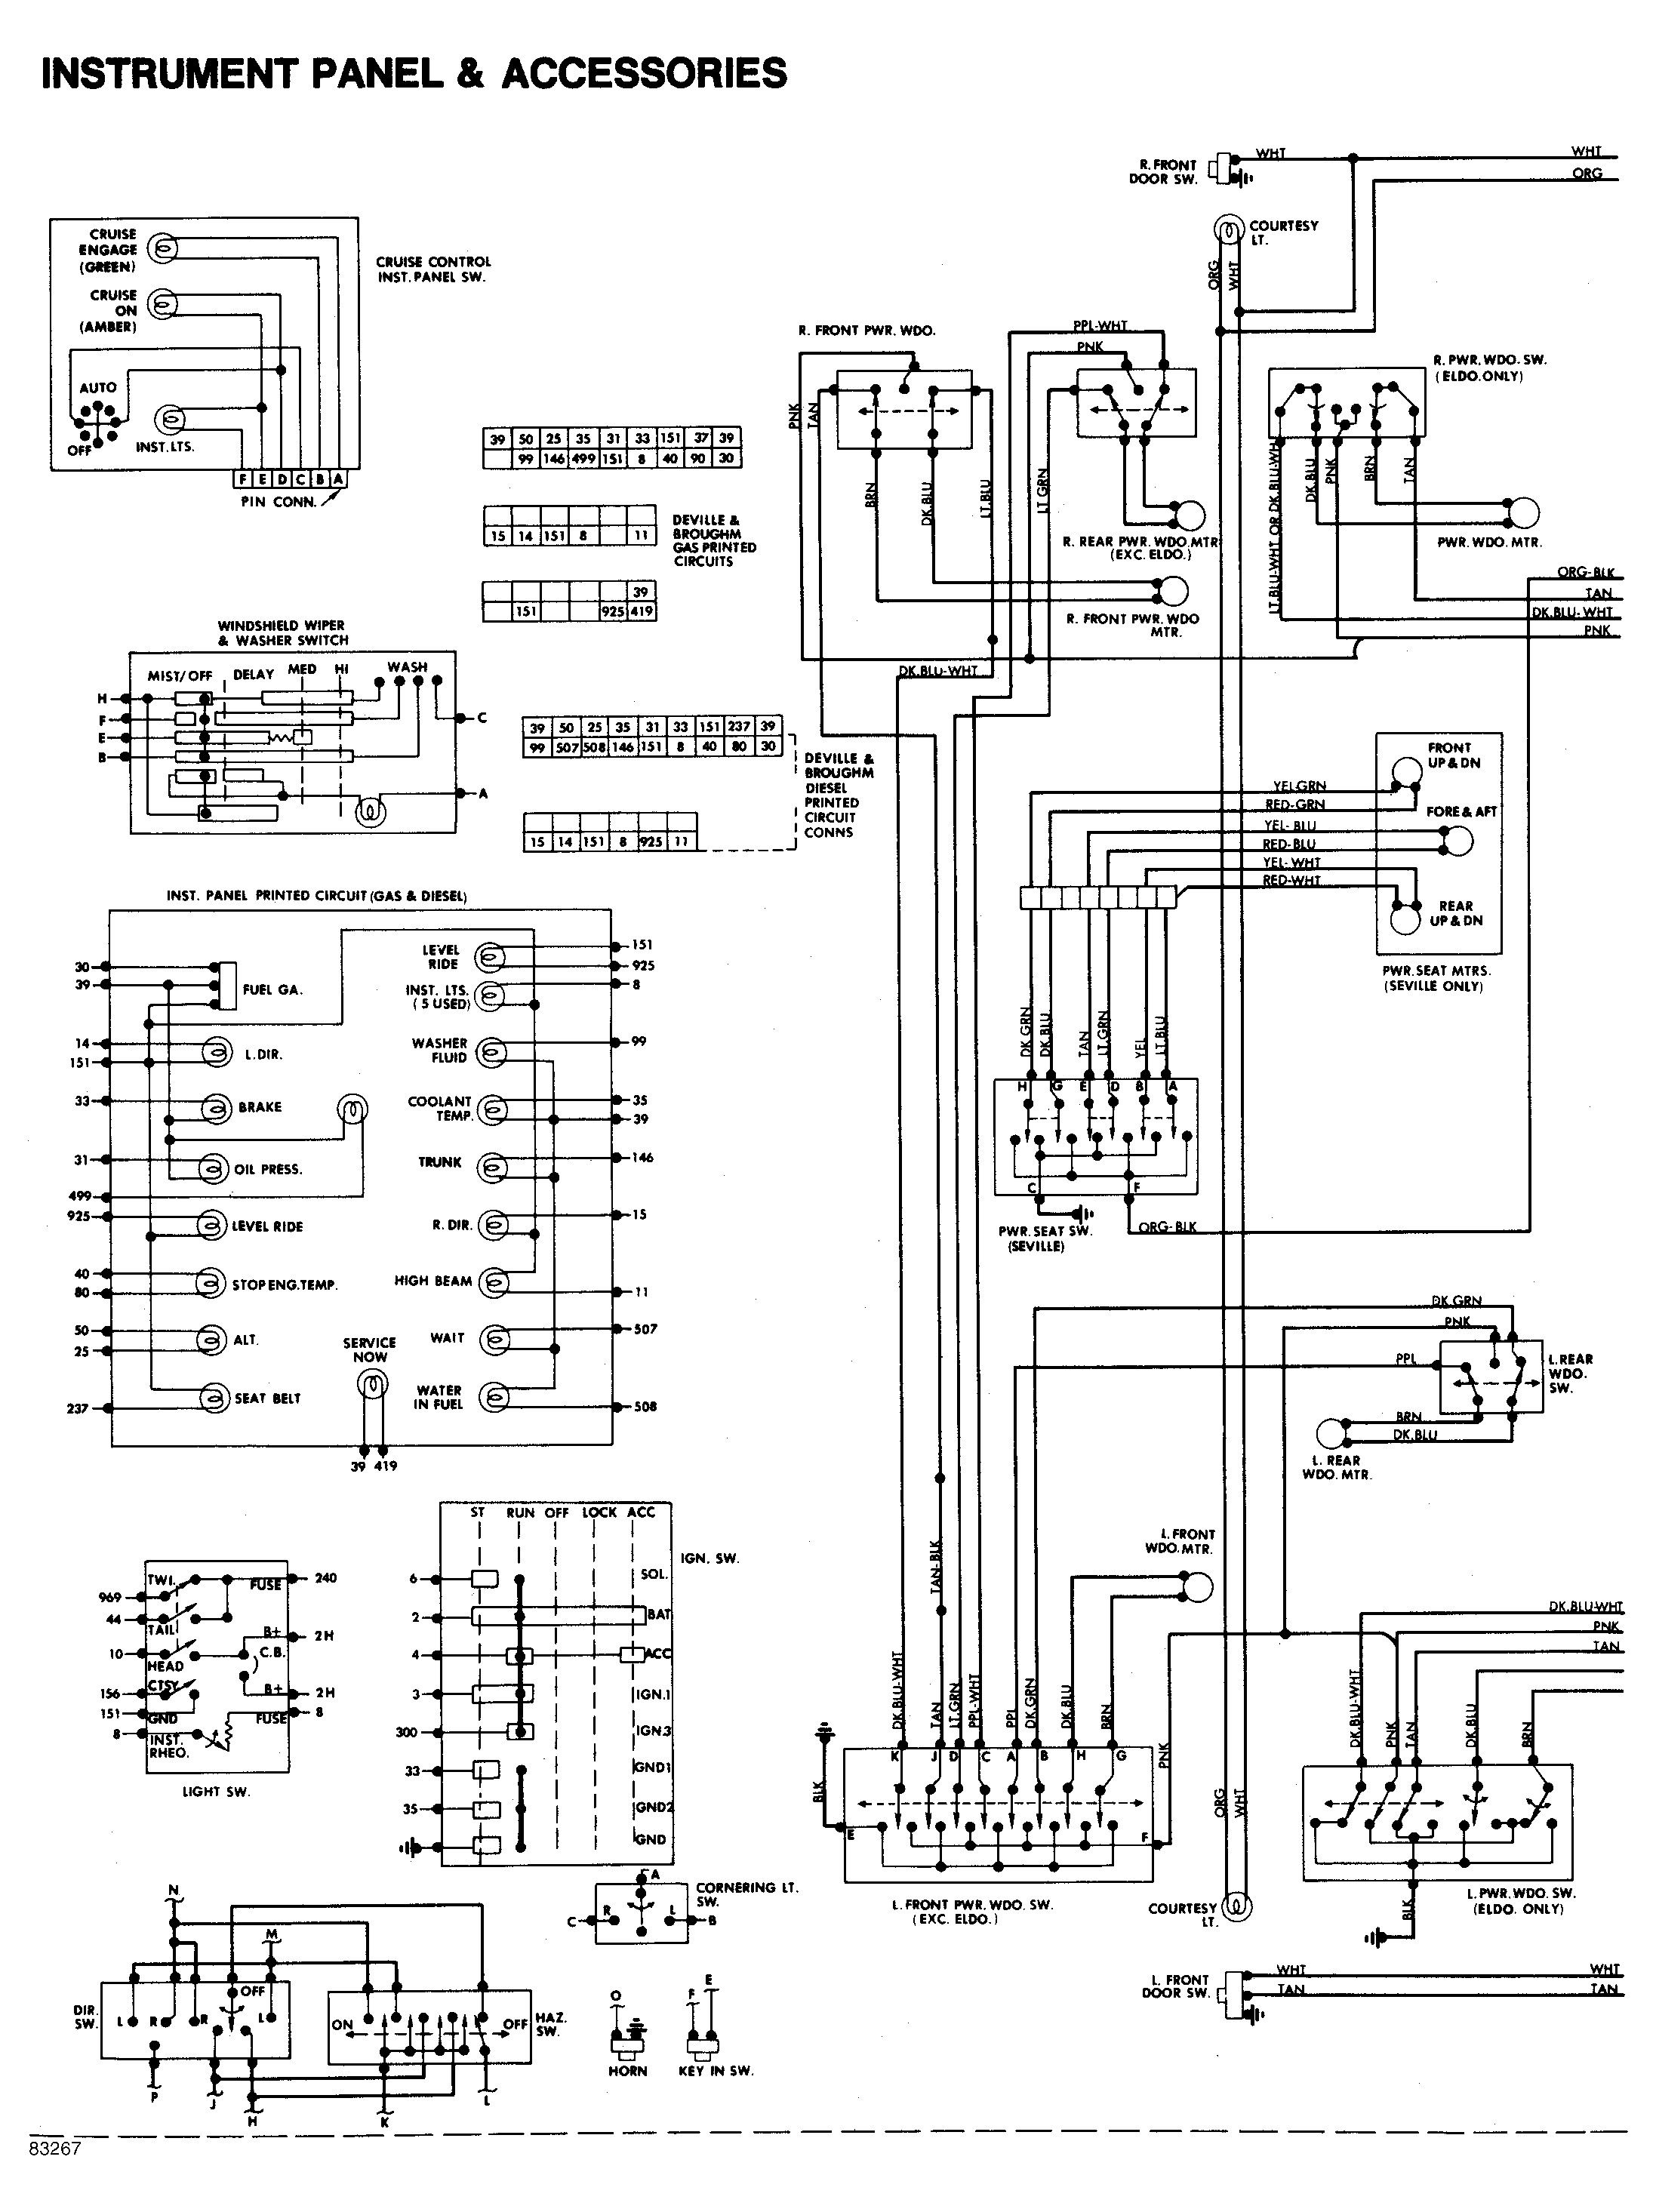 Awesome Daewoo Wiring Harness Diagram Printable Wiring Diagram Schematic Wiring Cloud Eachirenstrafr09Org